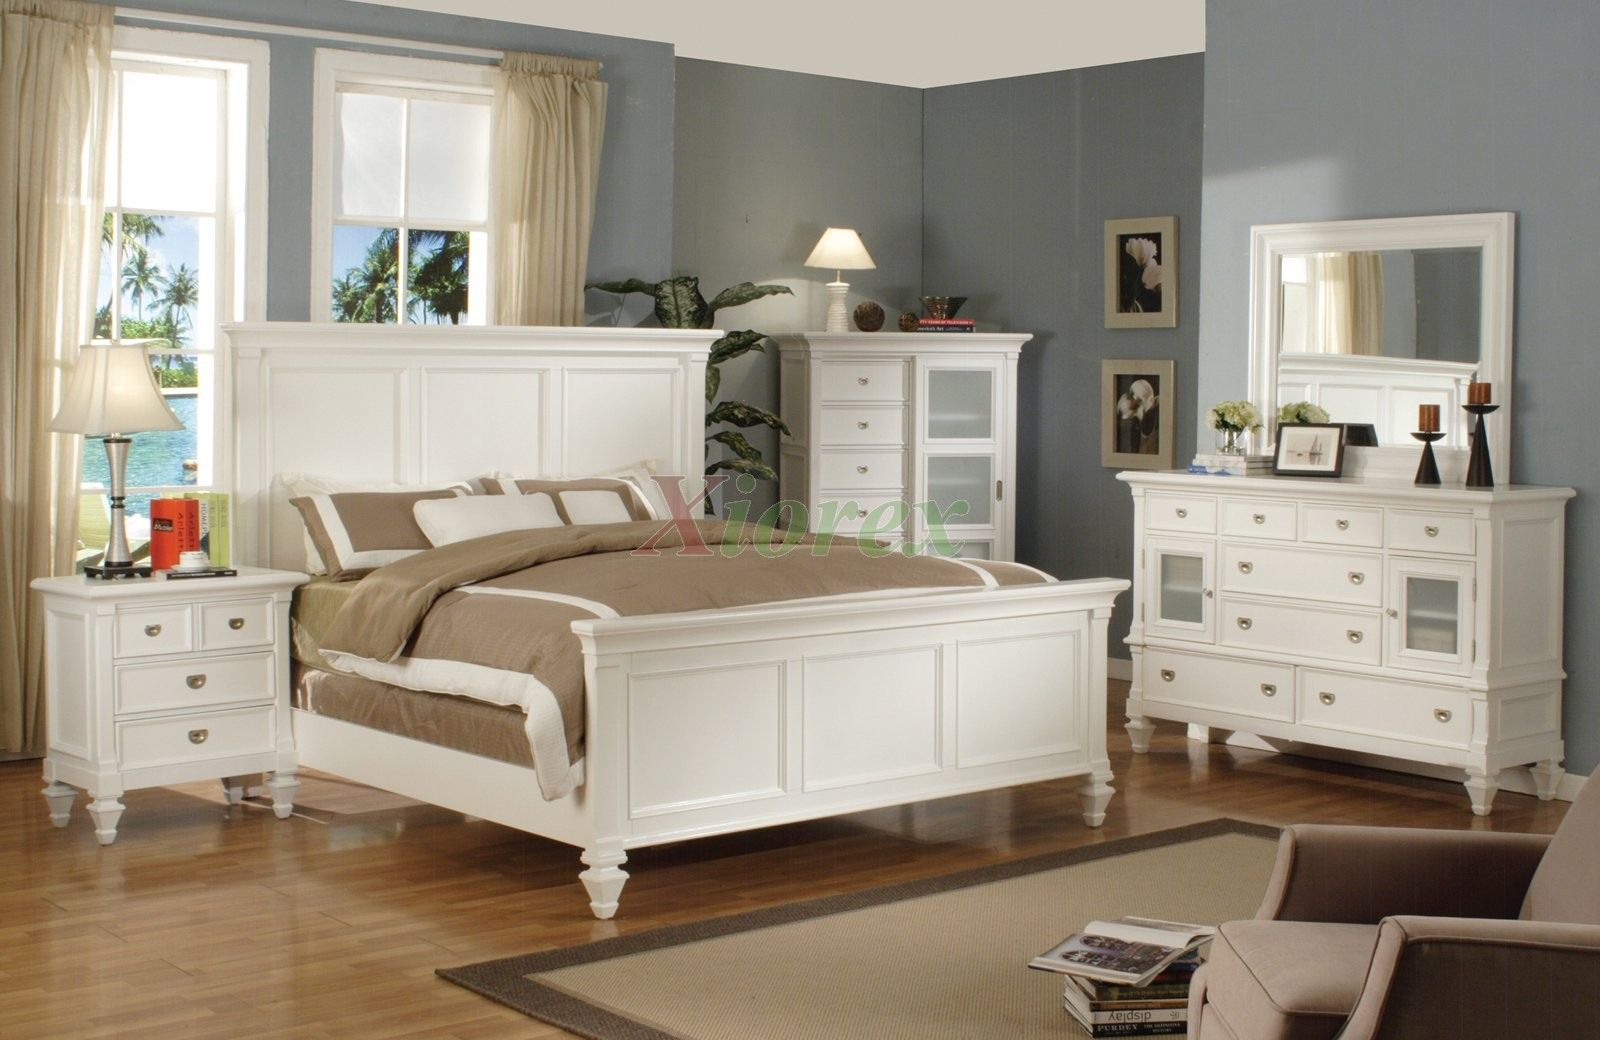 White Bedroom Sets bedroom furniture set 126 | xiorex | for the home | pinterest